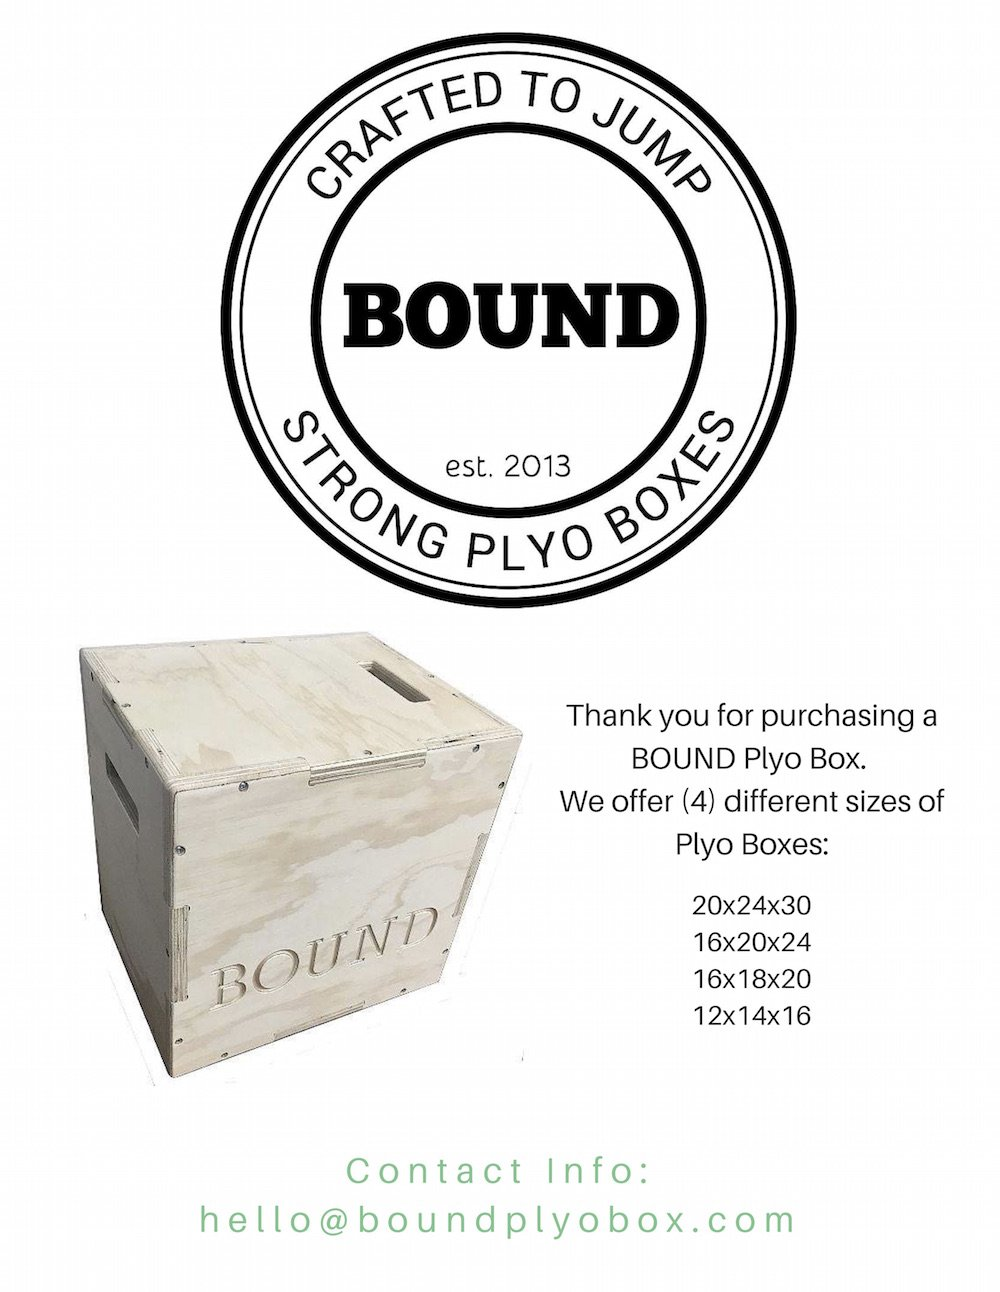 (20/24/30) Bound Plyo Box 3-in-1 Wood Puzzle Plyometric Box - CrossFit Training, MMA, or Plyometric Agility - Jump Box, Plyobox, Plyo Box, Plyometric Box, Plyometrics Box by BOUND Plyo Box (Image #4)